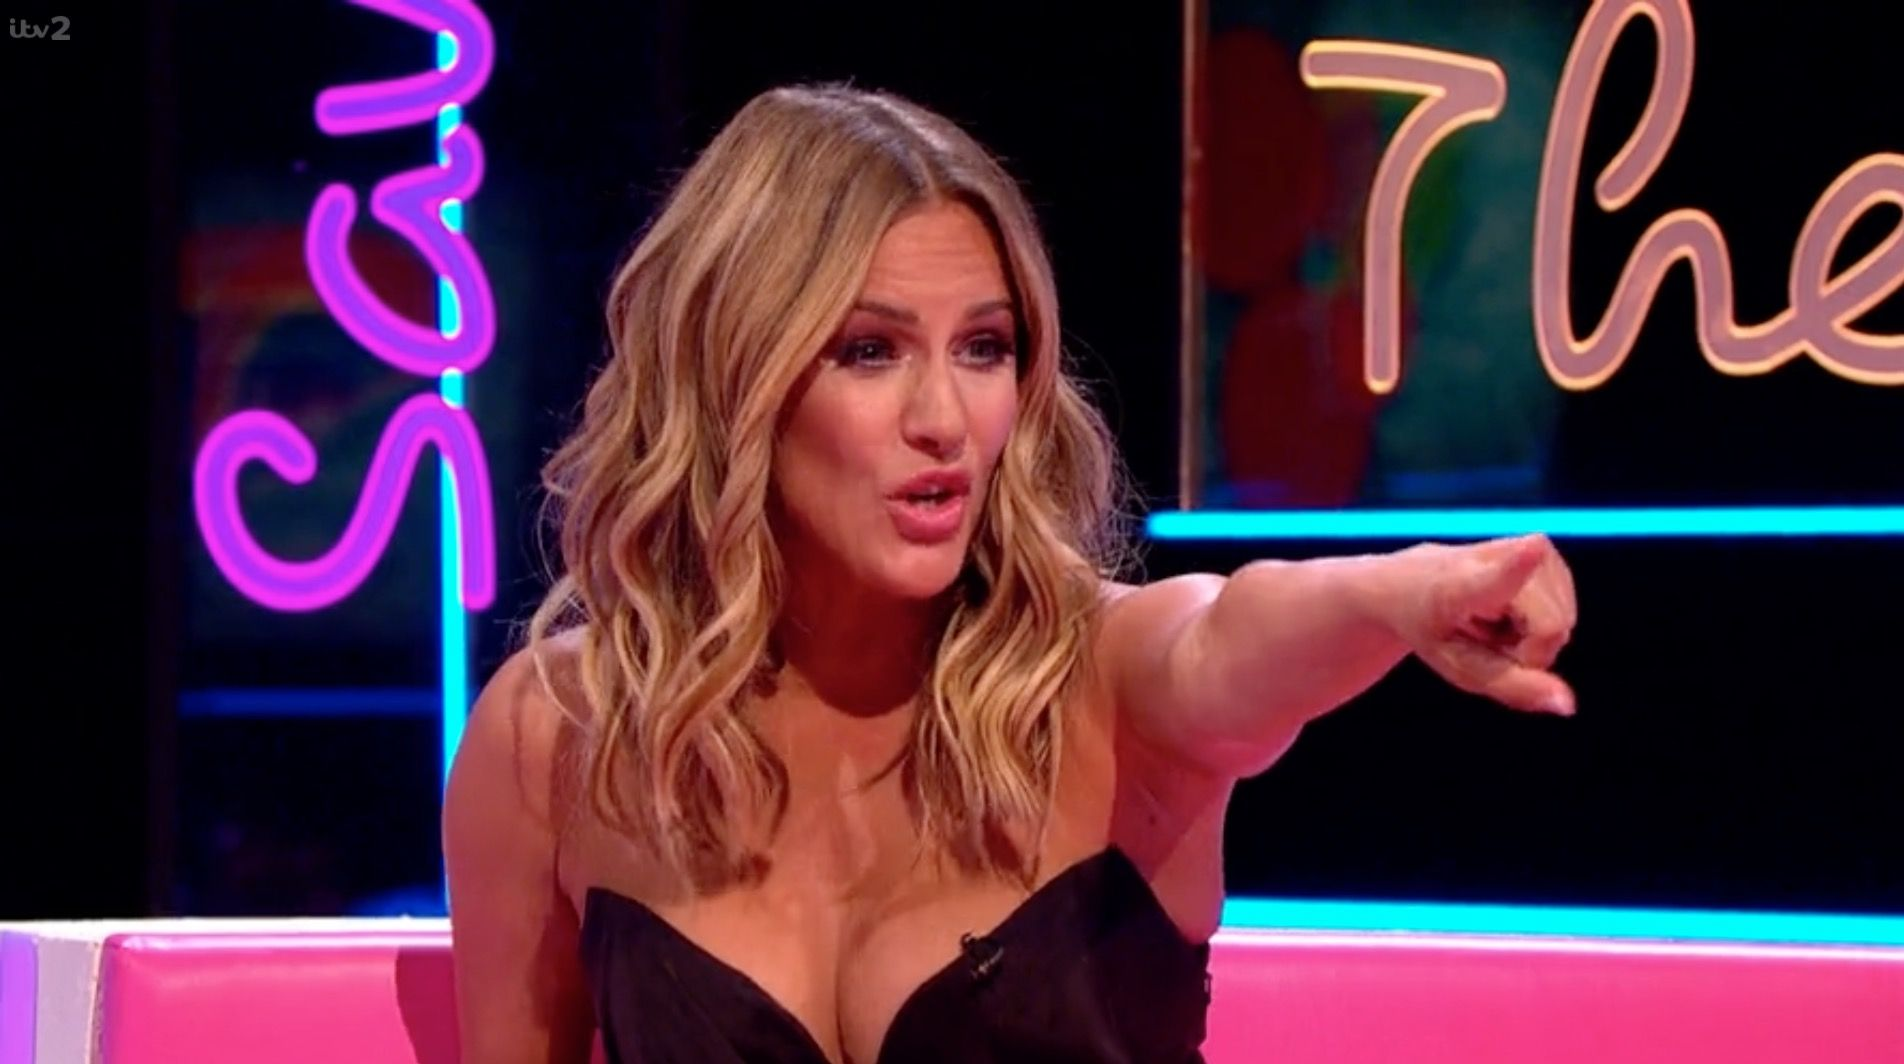 Love Island's Caroline Flack gets into a feud with Jameela Jamil over her new plastic surgery show